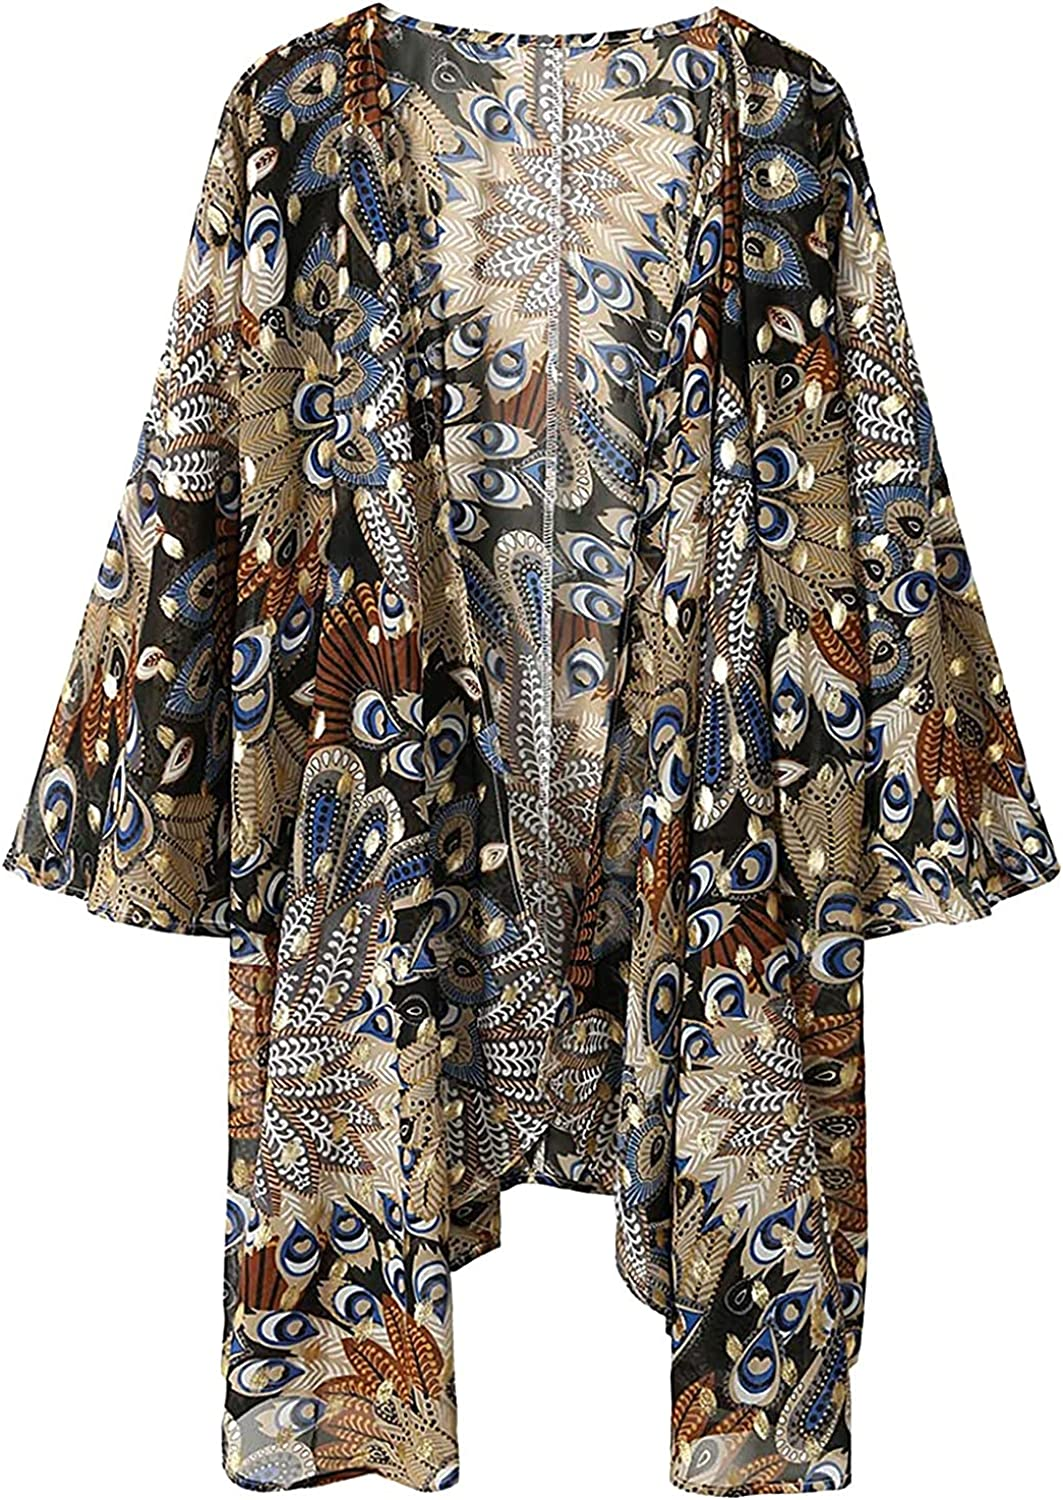 VonVonCo Pullover Sweaters for Women 3/4 Sleeve Tops and Blouses Floral Print Sheer Chiffon Loose Kimono Cardigan Capes Coat